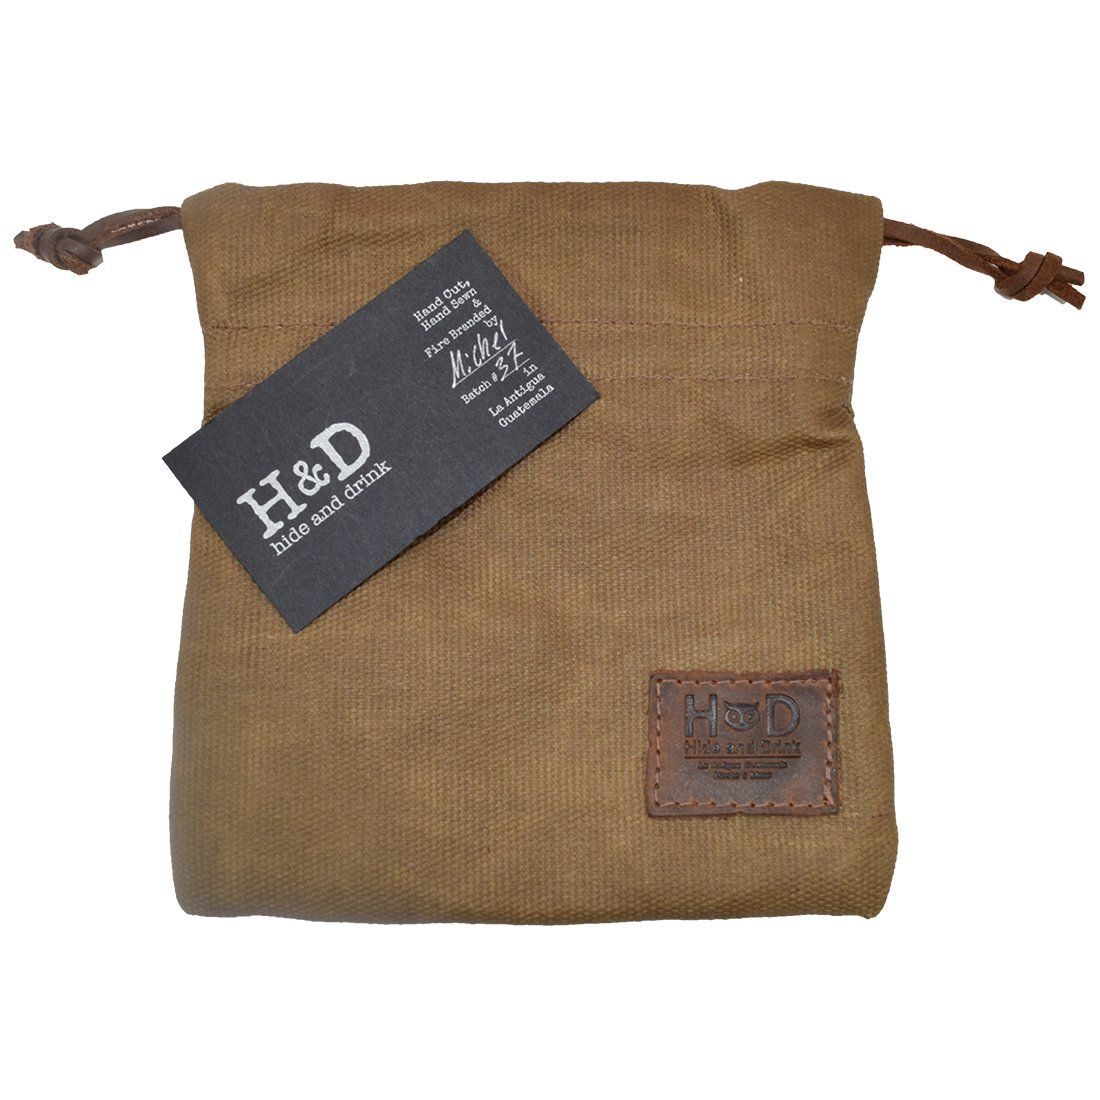 Hide & Drink Waxed Canvas Golf Valuables Field/Travel / Tech/Board Game Dice Pouch Handmade by Fatigue by Hide & Drink (Image #6)